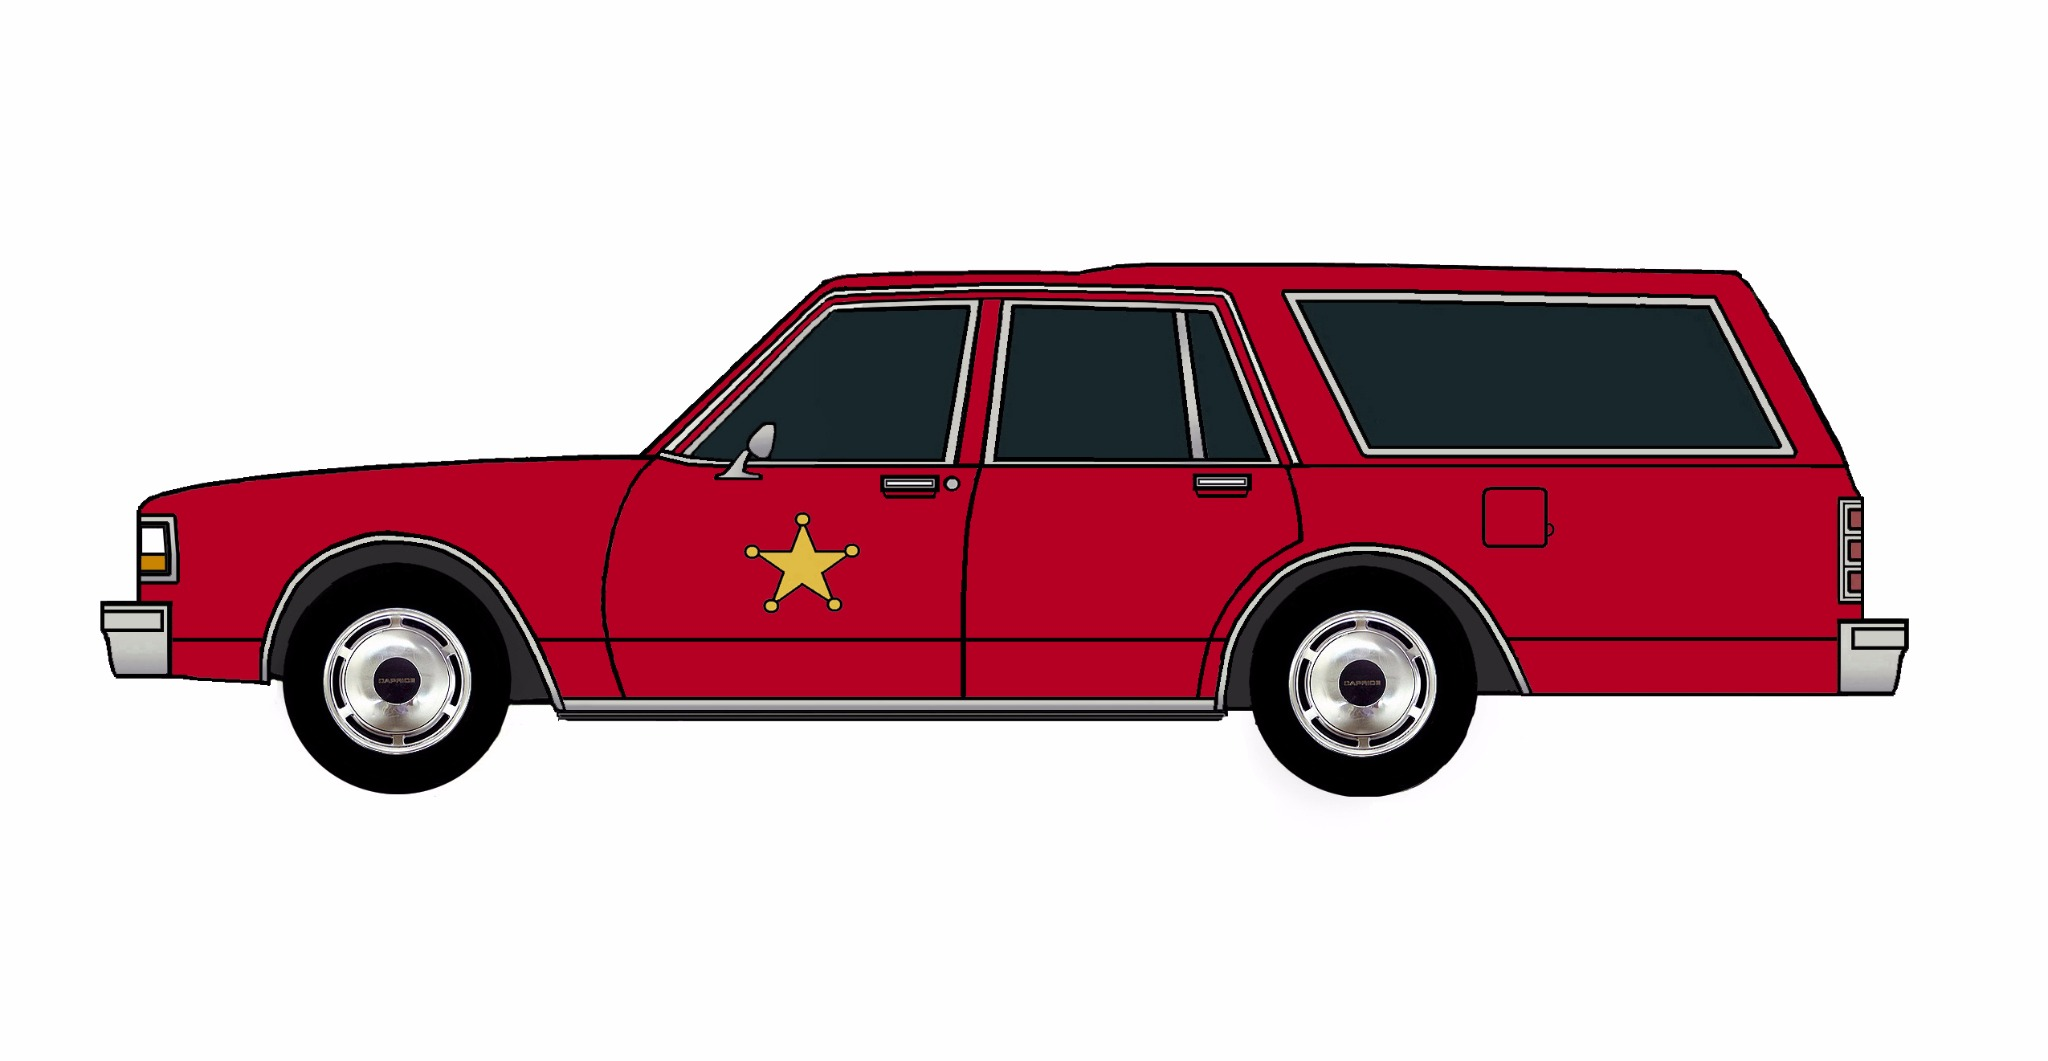 1987 Chevy Caprice 9C1 Wagon FIRE RED